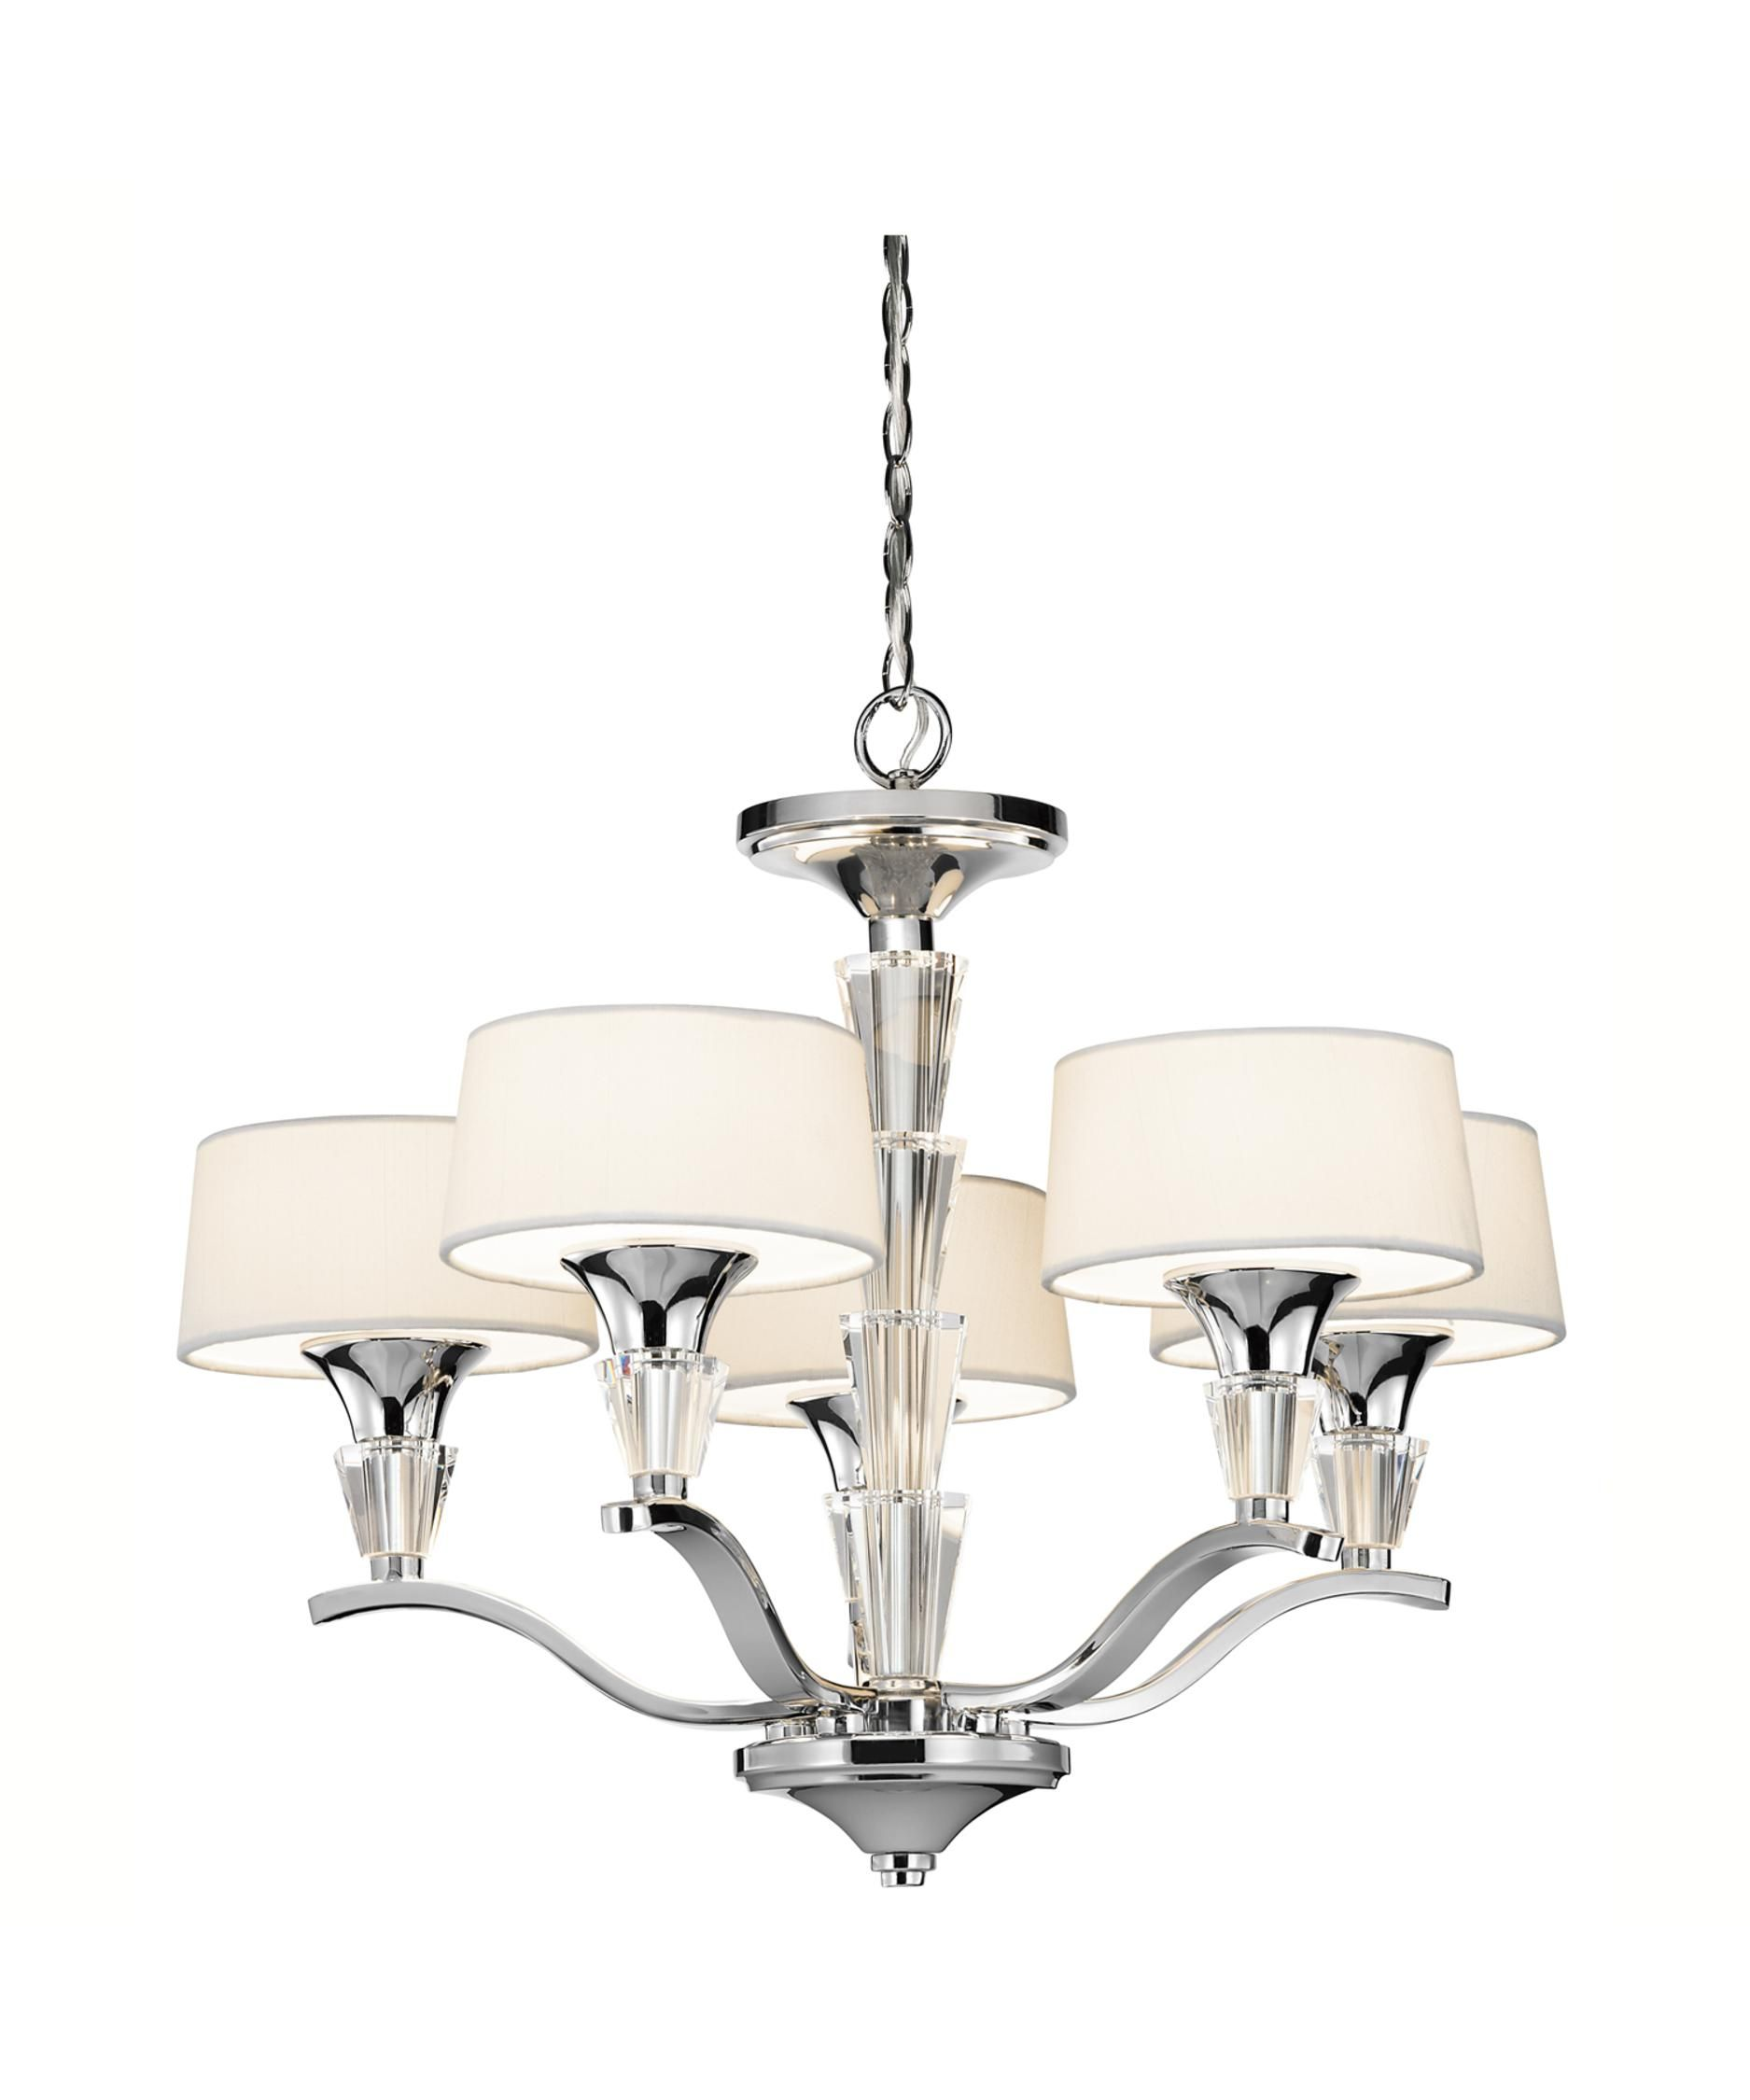 Crystal Persuasion 17 Inch 5 Light Mini Chandelier By